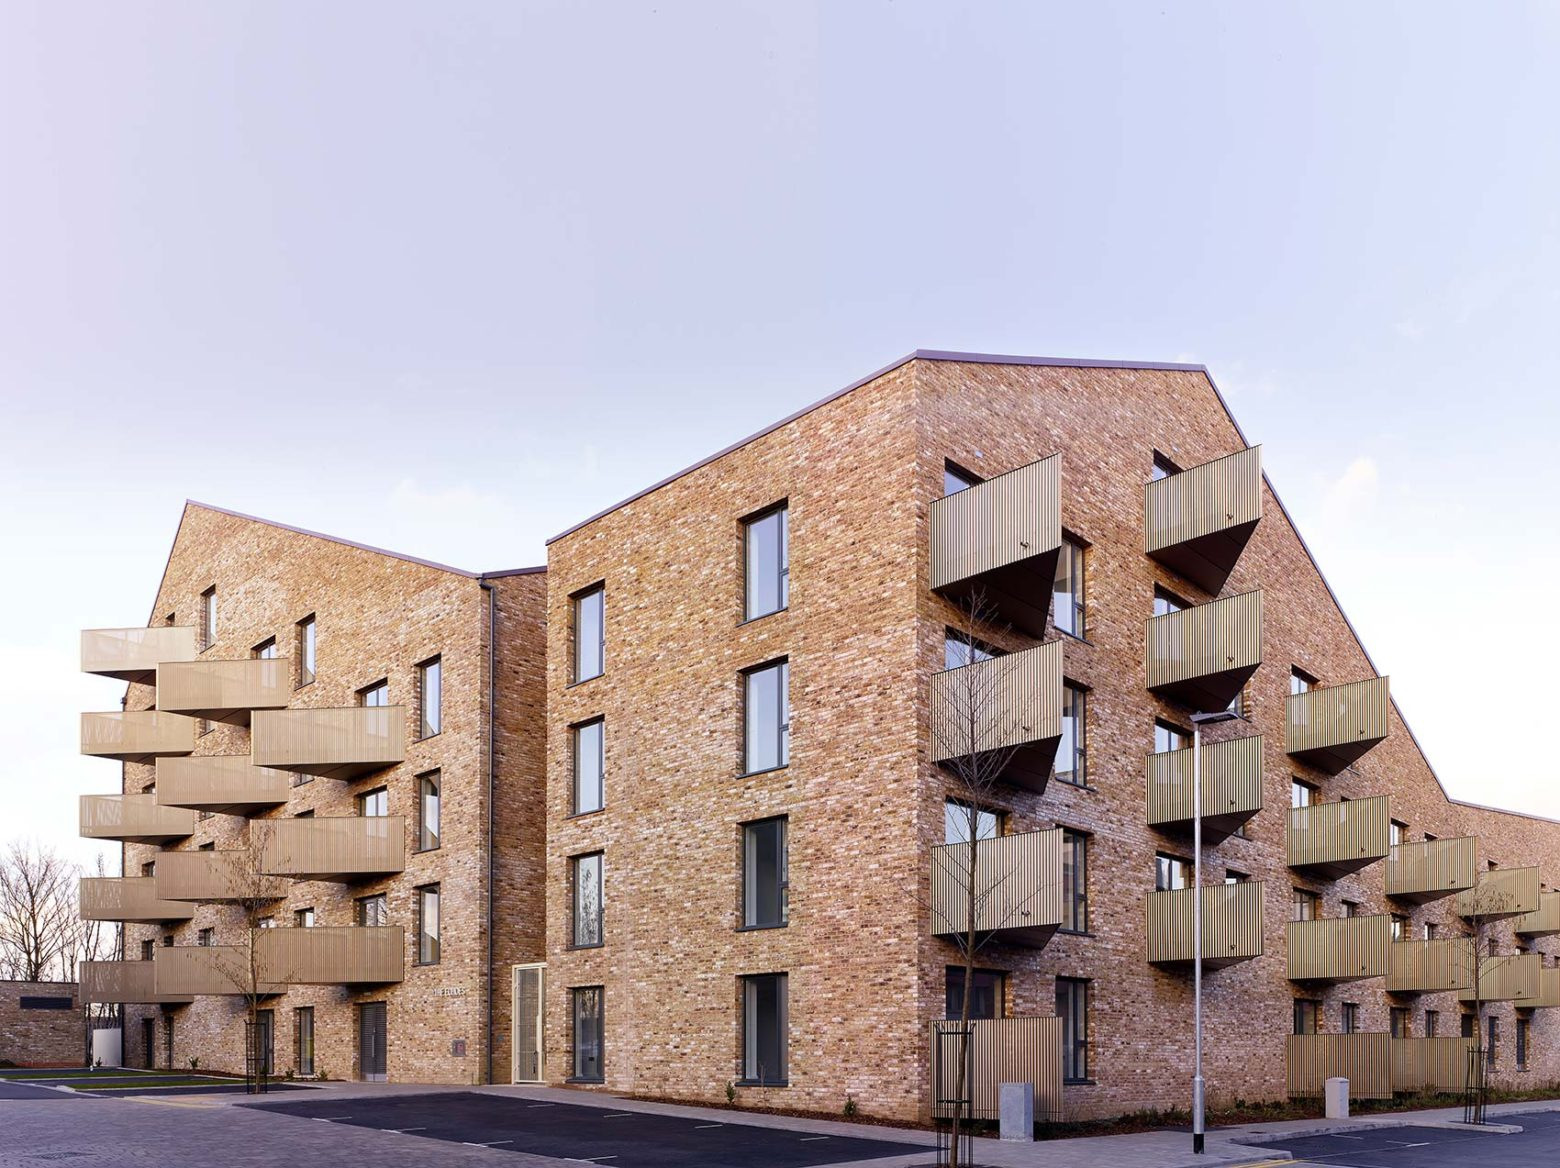 Bracelet Close and The Echoes shortlisted for regional RIBA Award